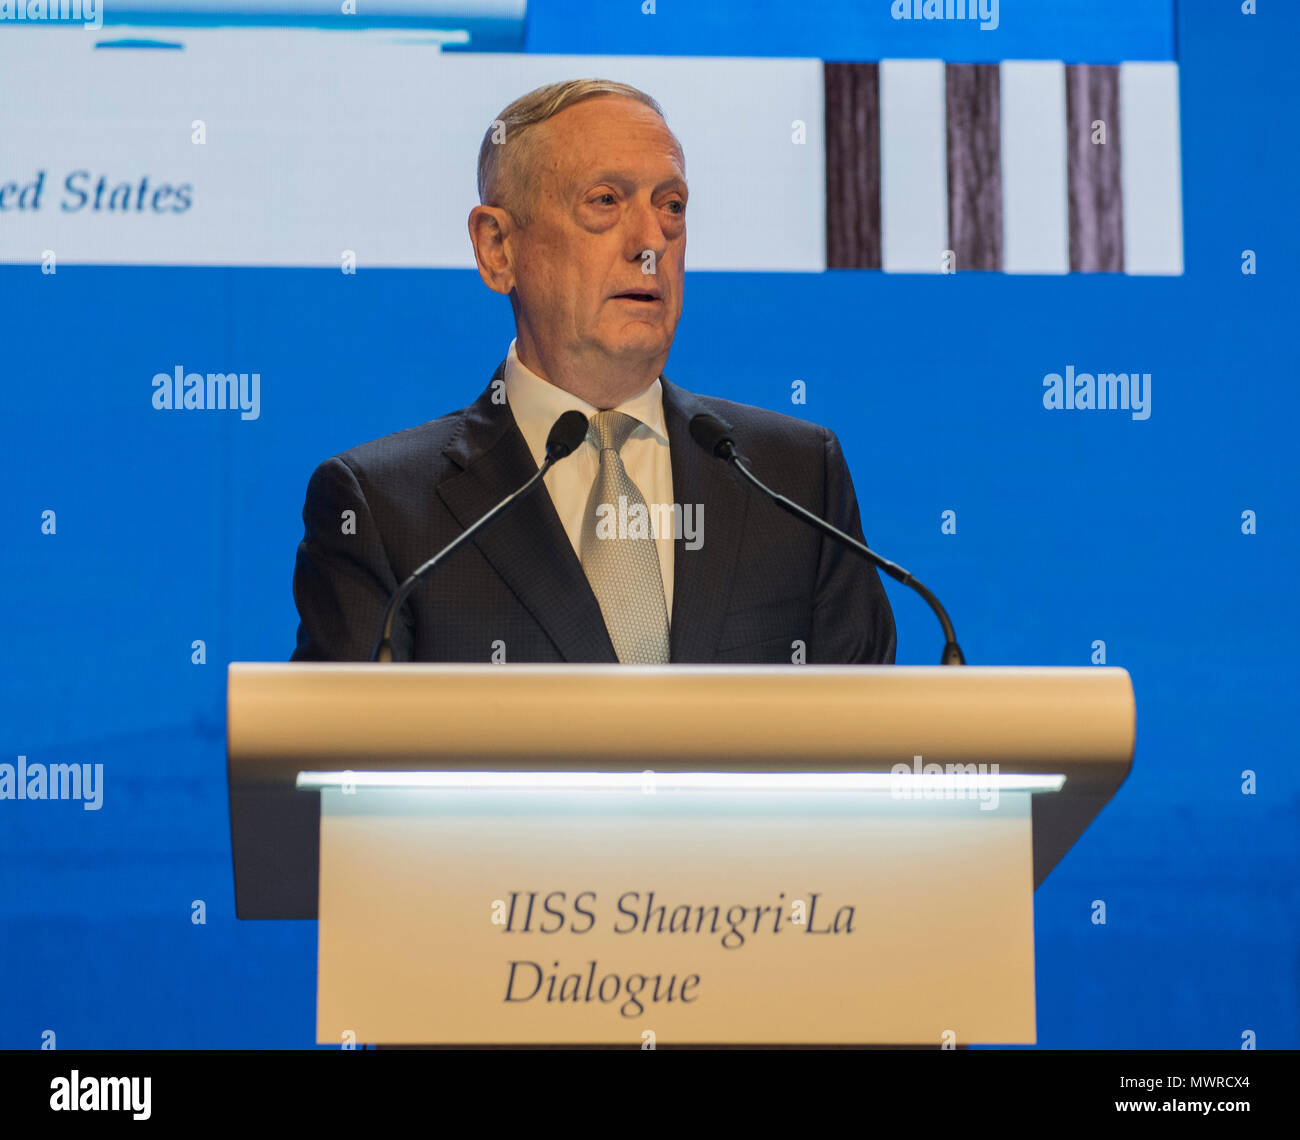 180602-N-OU129-205 SINGAPORE (June 1, 2018) Secretary of Defense Jim Mattis delivers remarks during the first plenary session of the Shangri-La Dialogue 2018 June 2. The Shangri-La Dialogue, held annually by the independent think tank, the International Institute for Strategic Studies (IISS), is an inter-governmental security forum which is attended by defense ministers and delegates from more than 50 nations. (U.S. Navy photo by Mass Communication Specialist 2nd Class Joshua Fulton/Released) - Stock Image